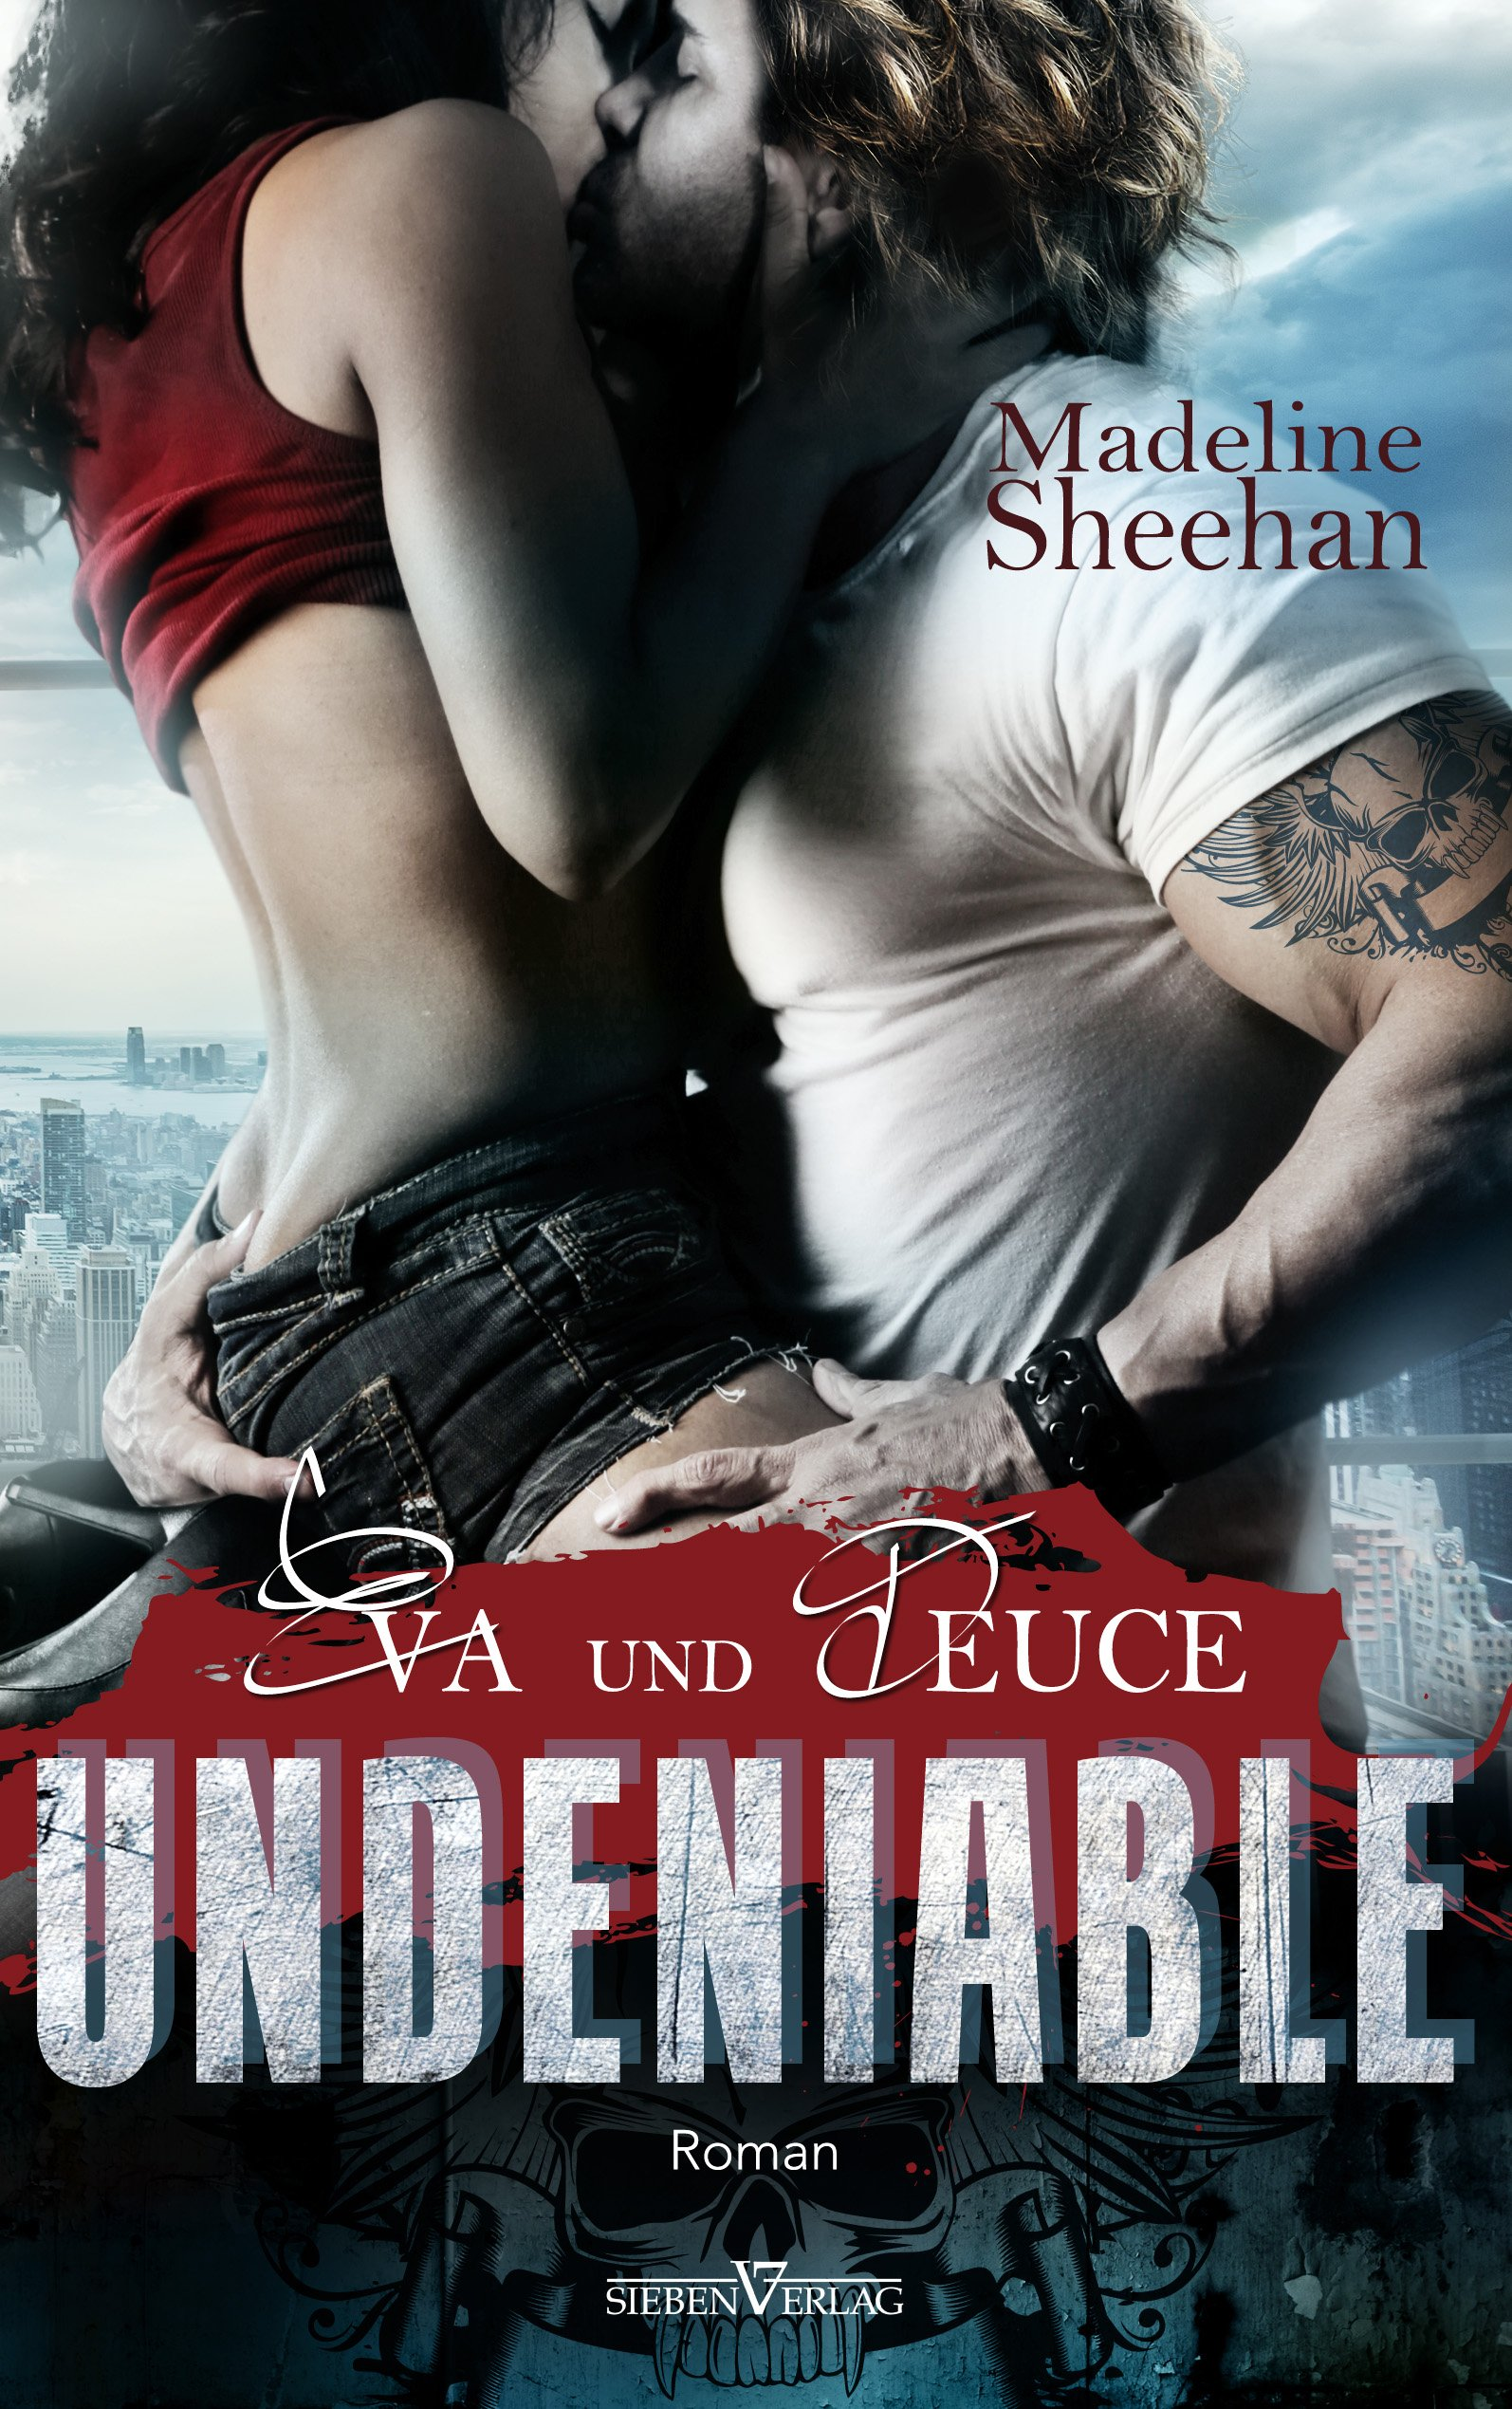 http://thesmallworldofqueenofreading.weebly.com/mes-chroniques/hells-horsemen-tome-1-indeniable-de-madeline-sheehan